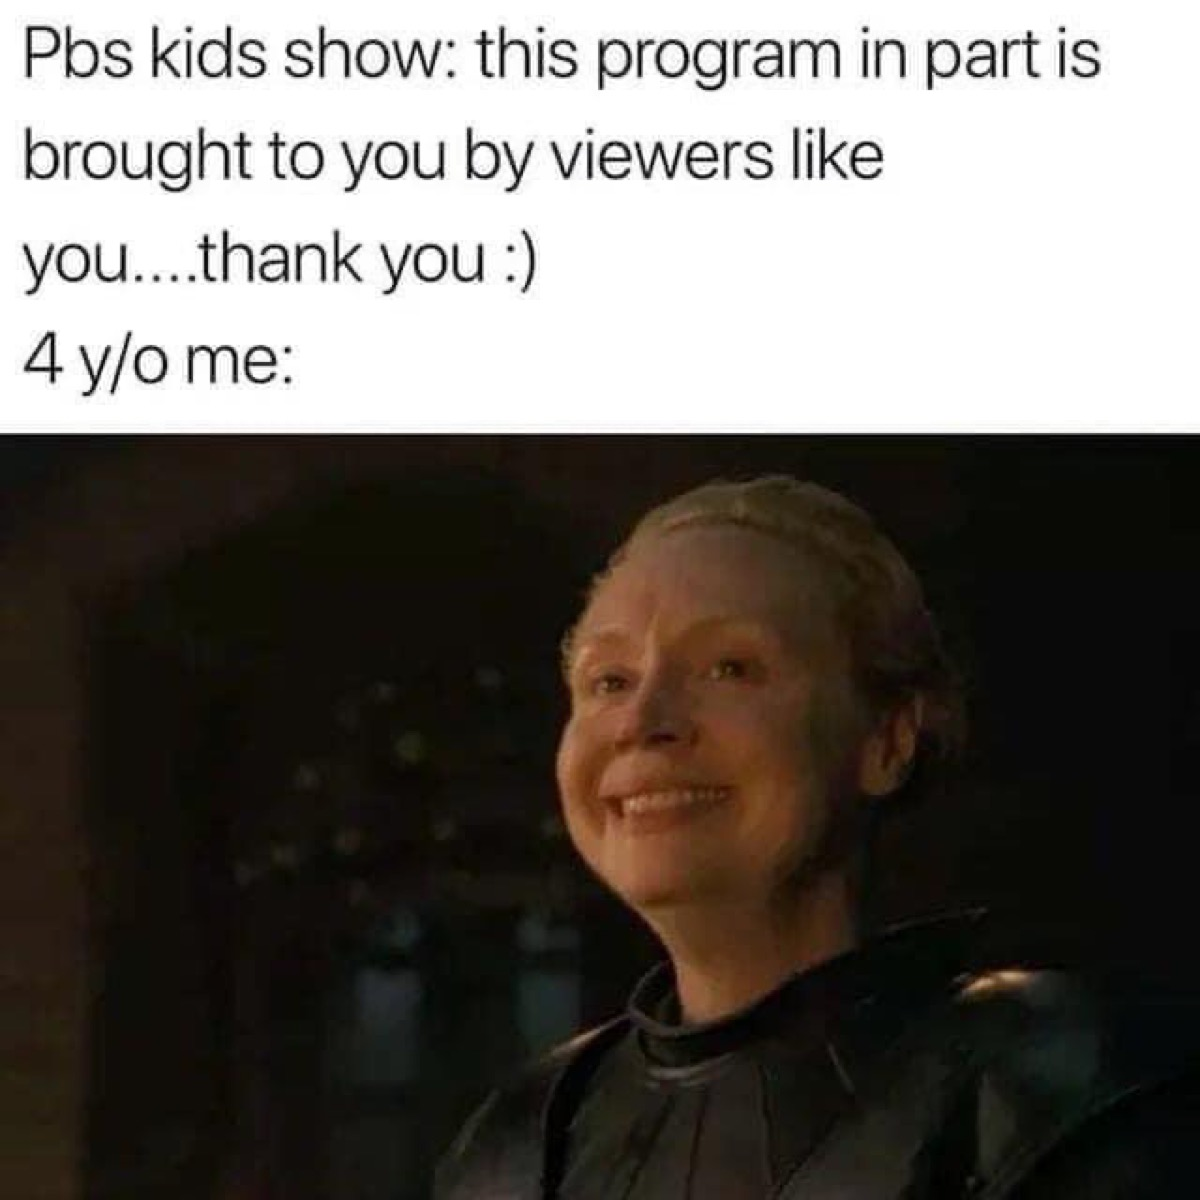 """""""PBS kids show: this program in part is brought to you by viewers like you...thank you."""" """"4 year old me:"""" with screenshot of Brienne smiling in Game of Thrones"""